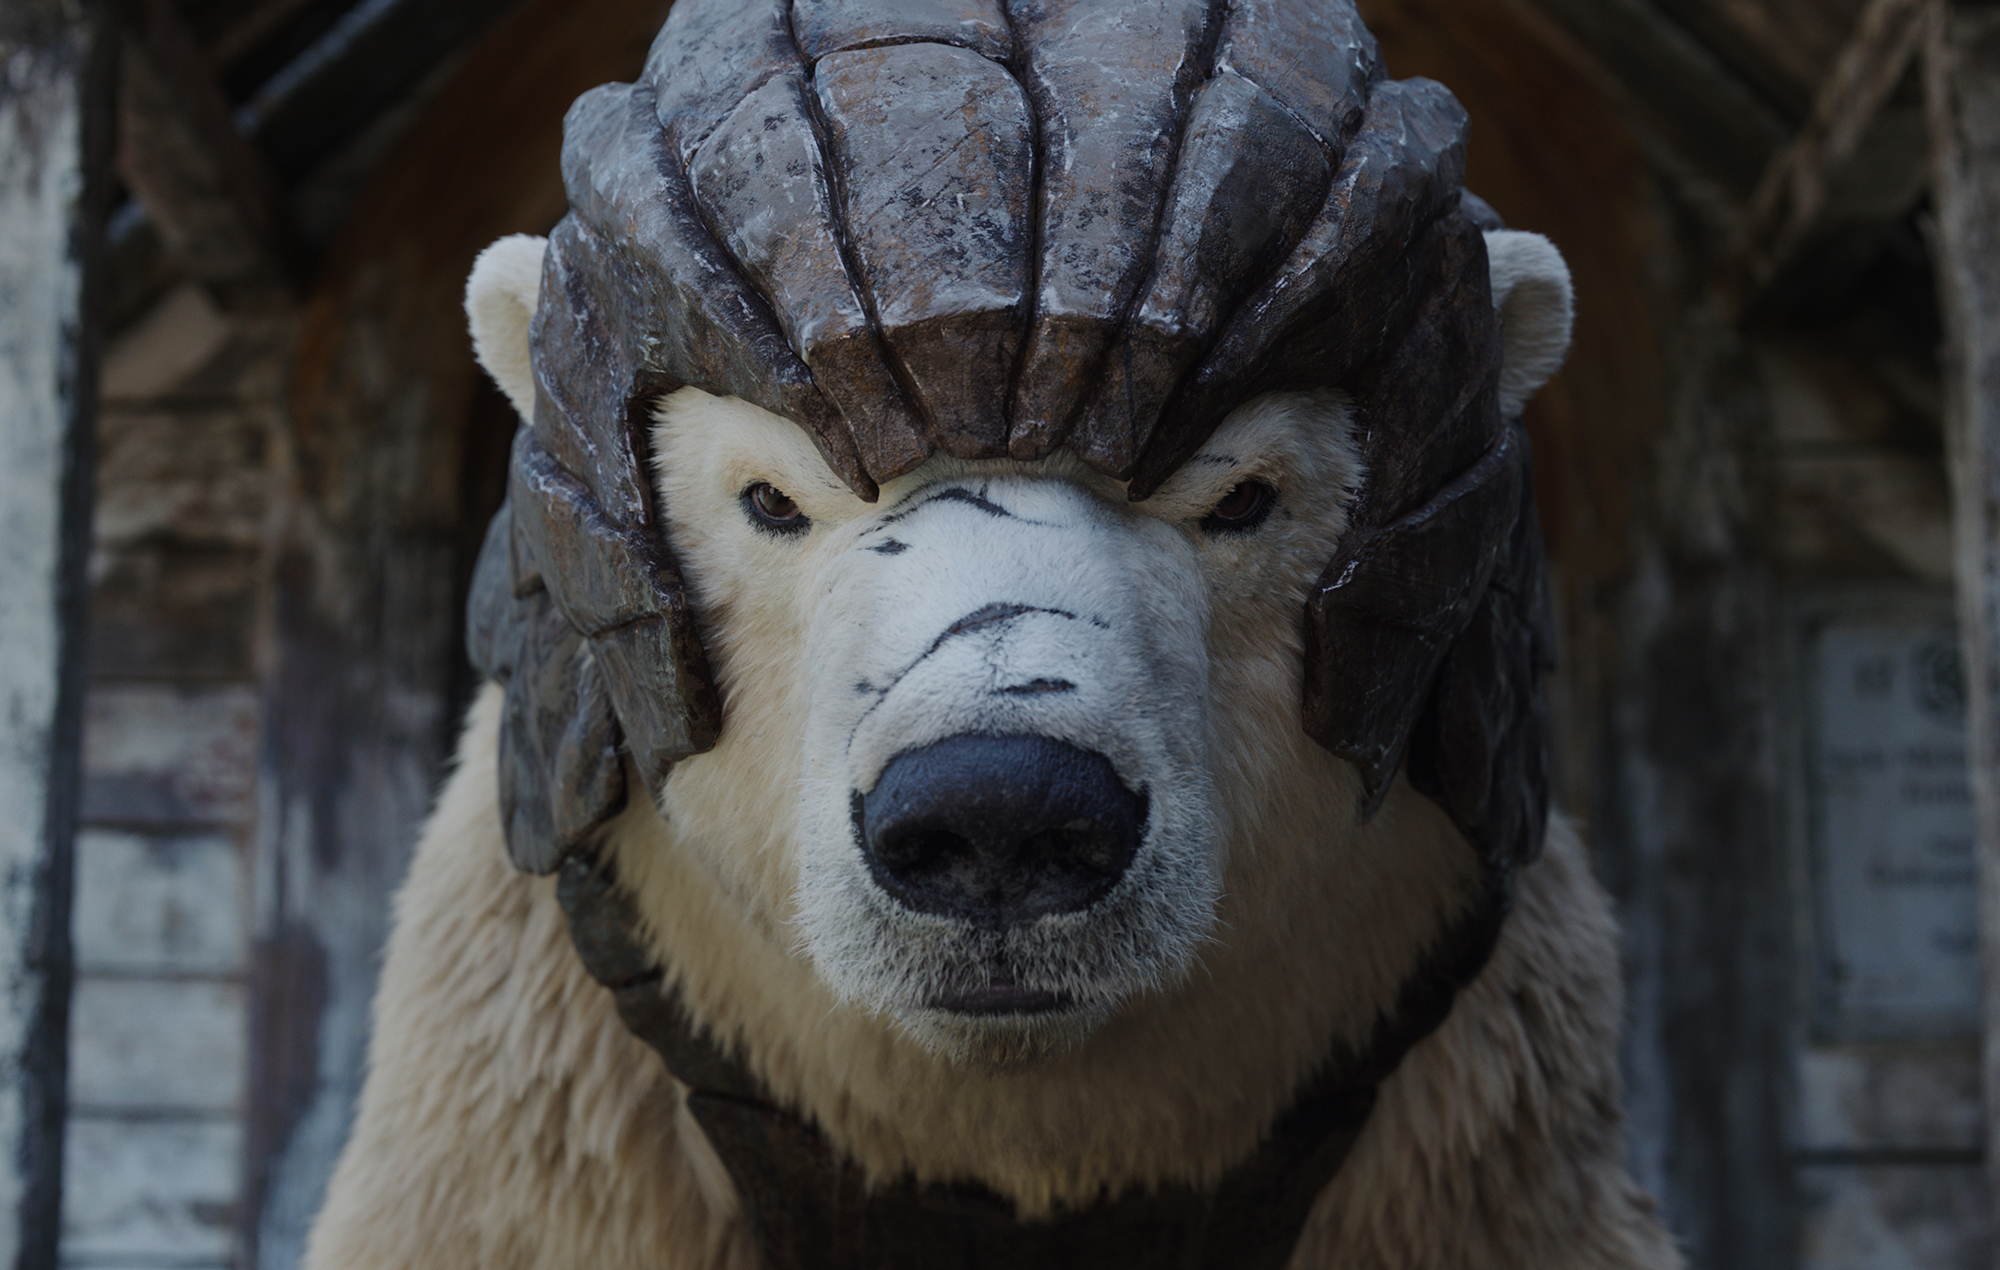 First look: 'His Dark Materials' is a magnificent retelling of Philip Pullman's fantasy epic